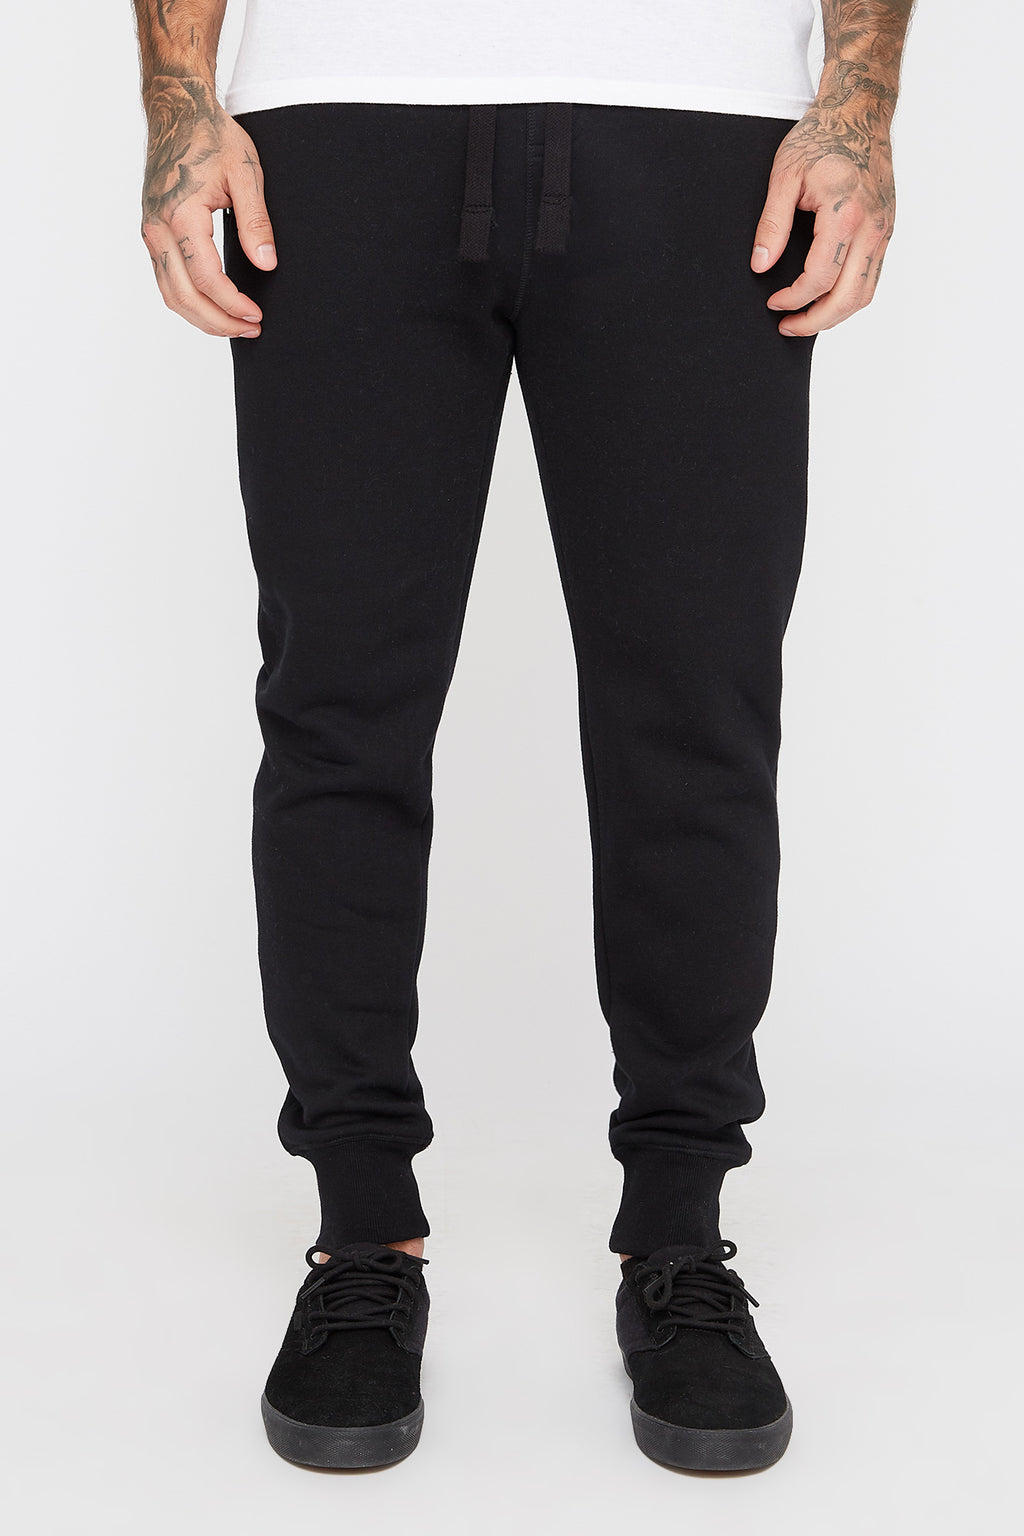 West49 Mens Solid Zip-Up Jogger